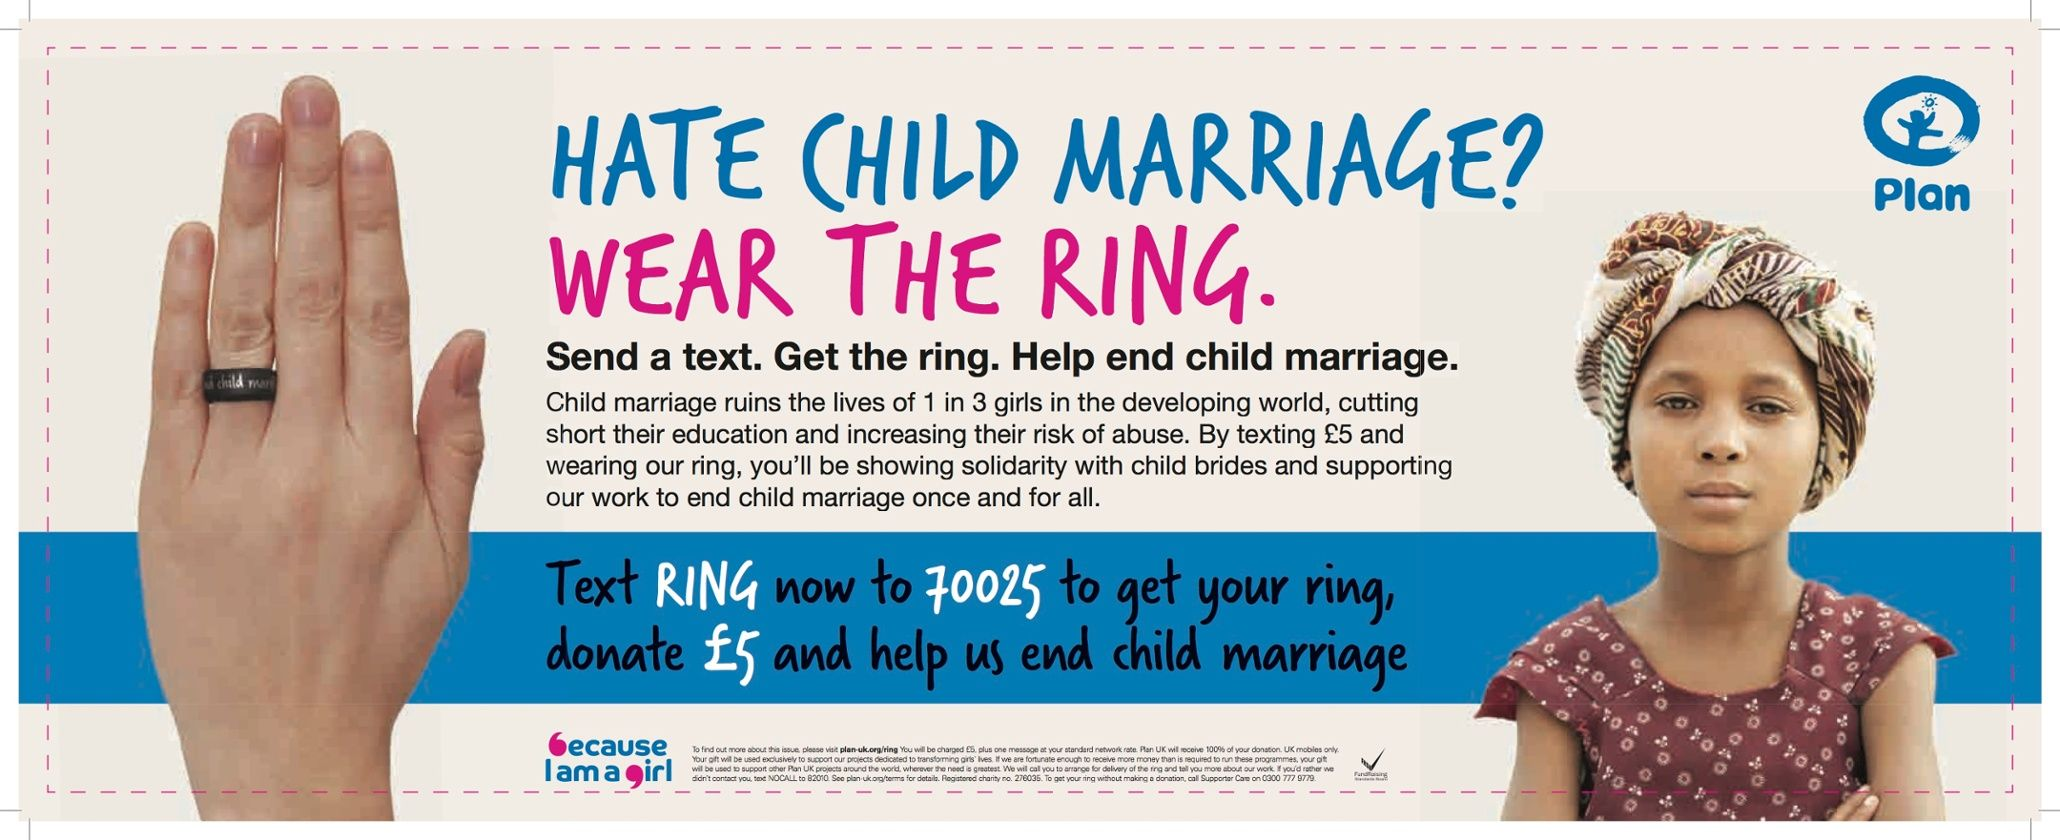 The Anatomy Of A Campaign Giving Child Marriage The Finger Plan Uk